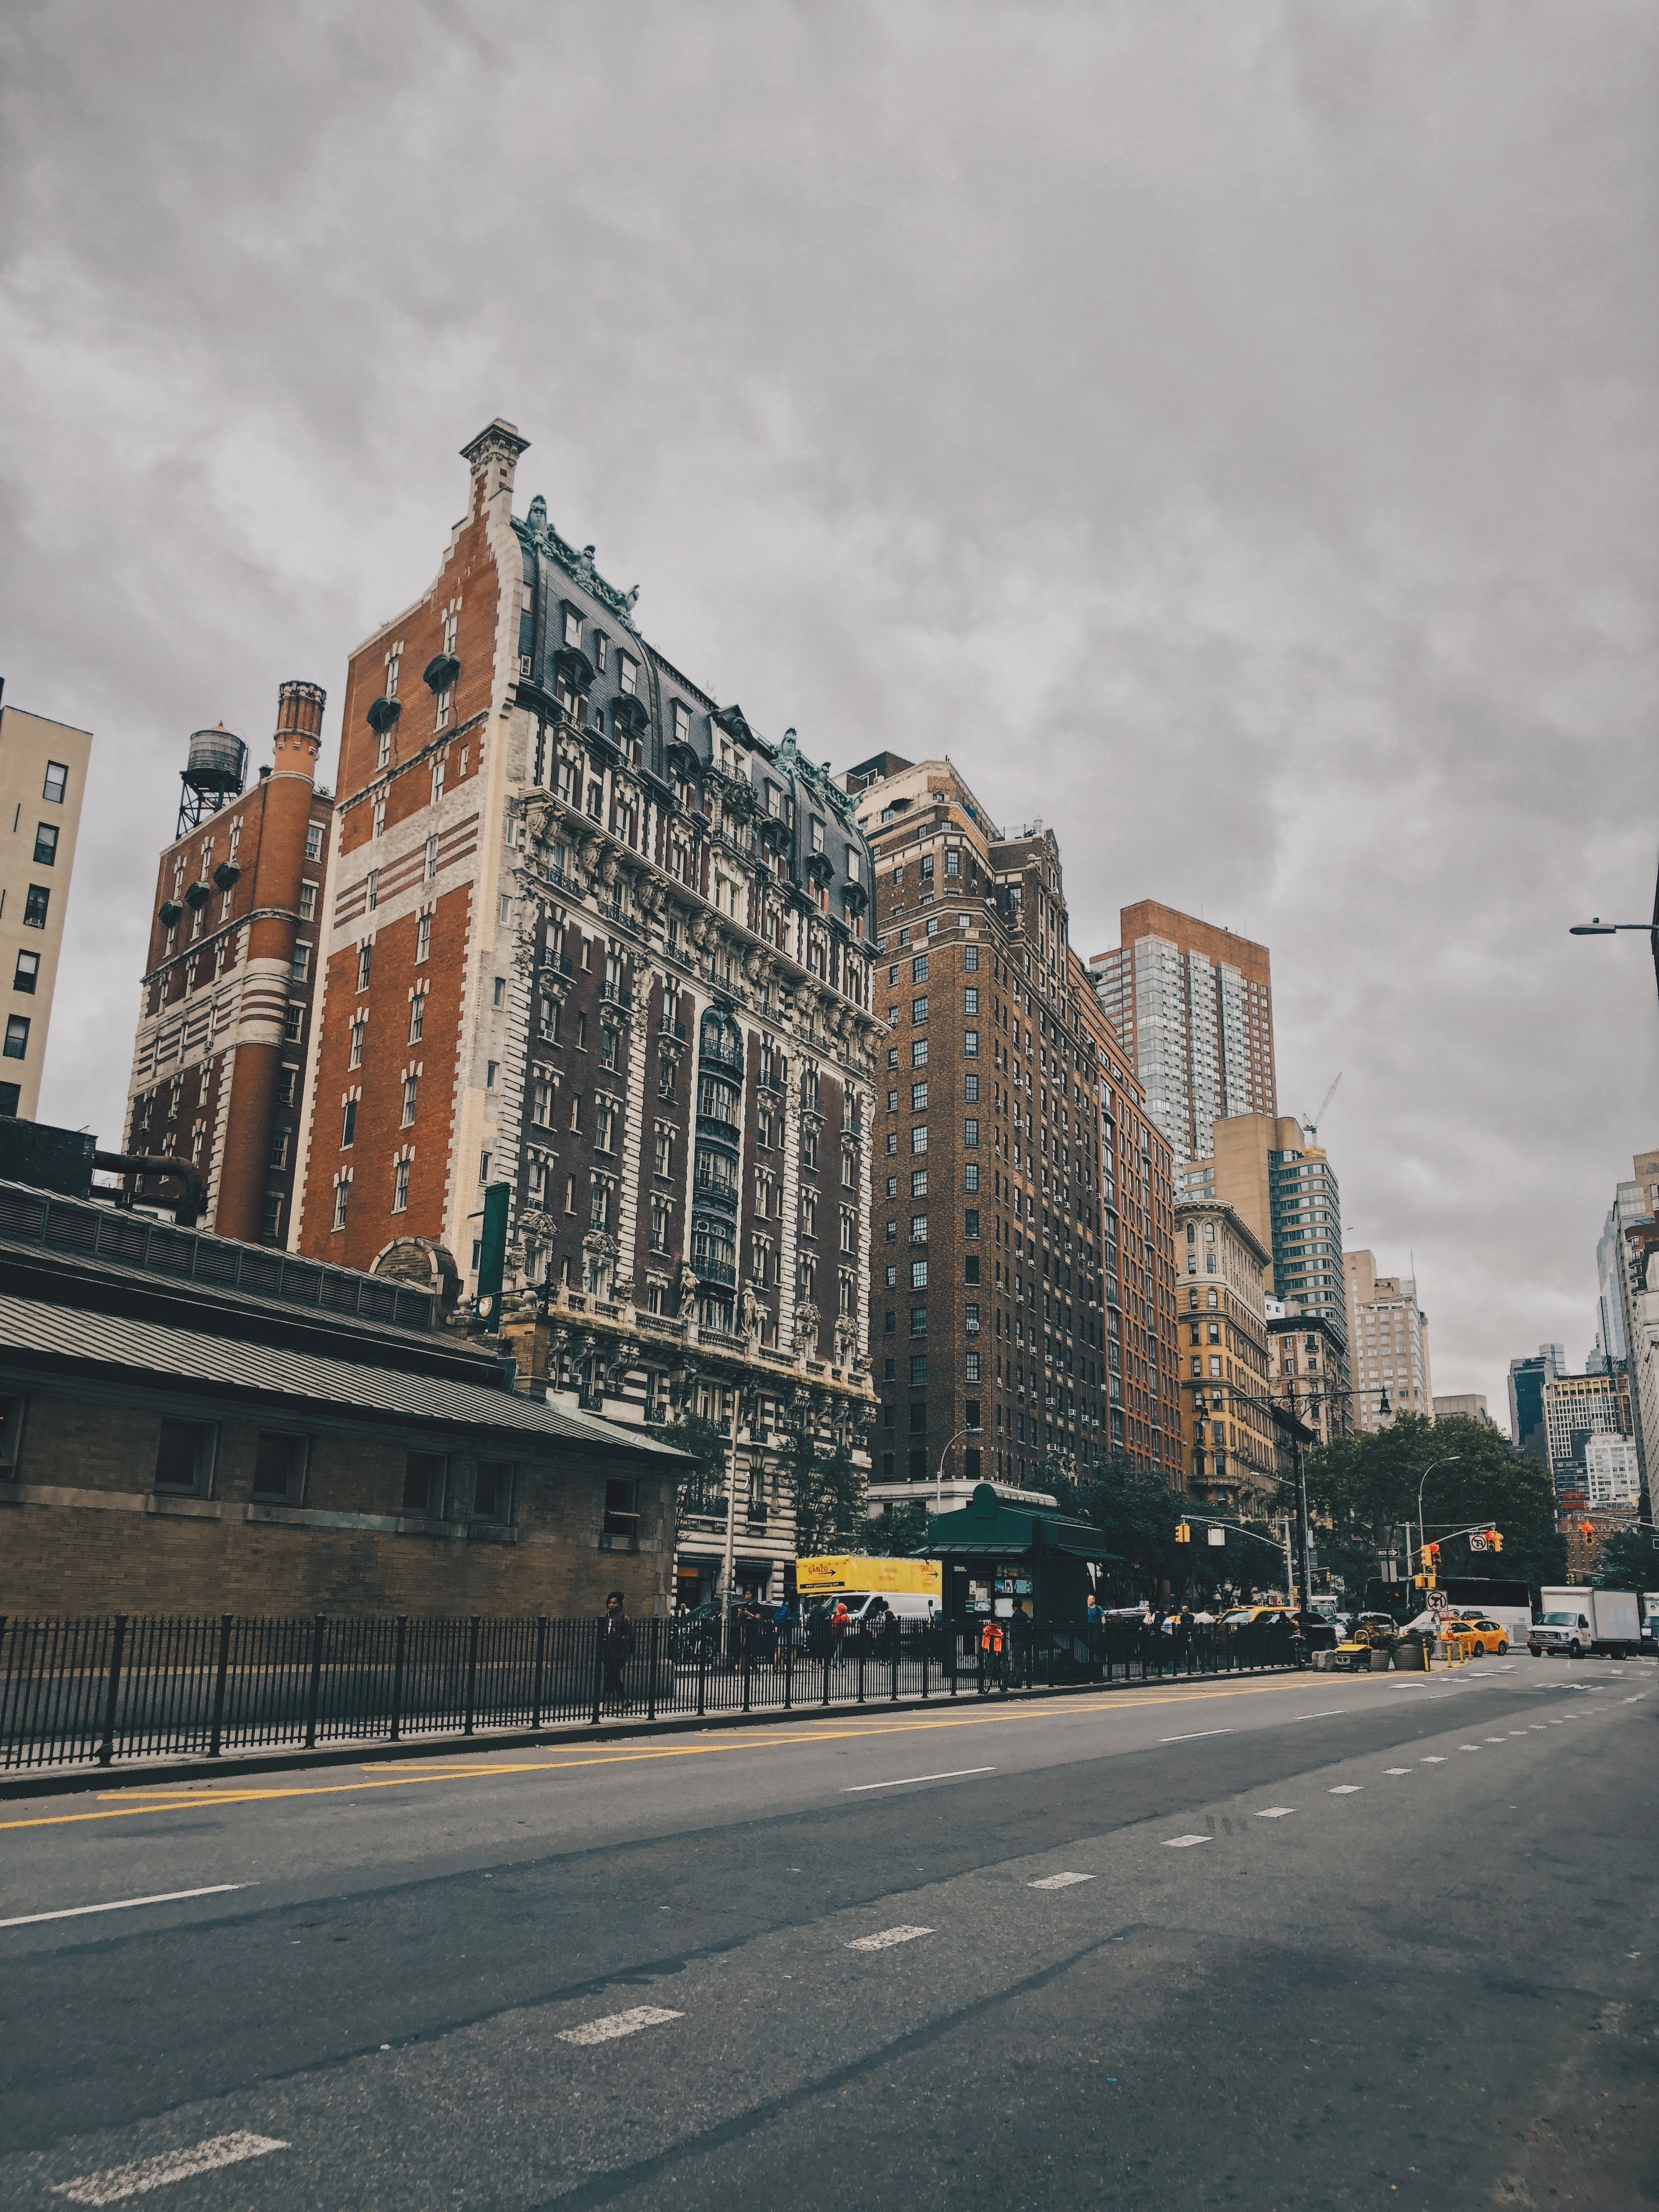 Photo of Tall Buildings Near Road